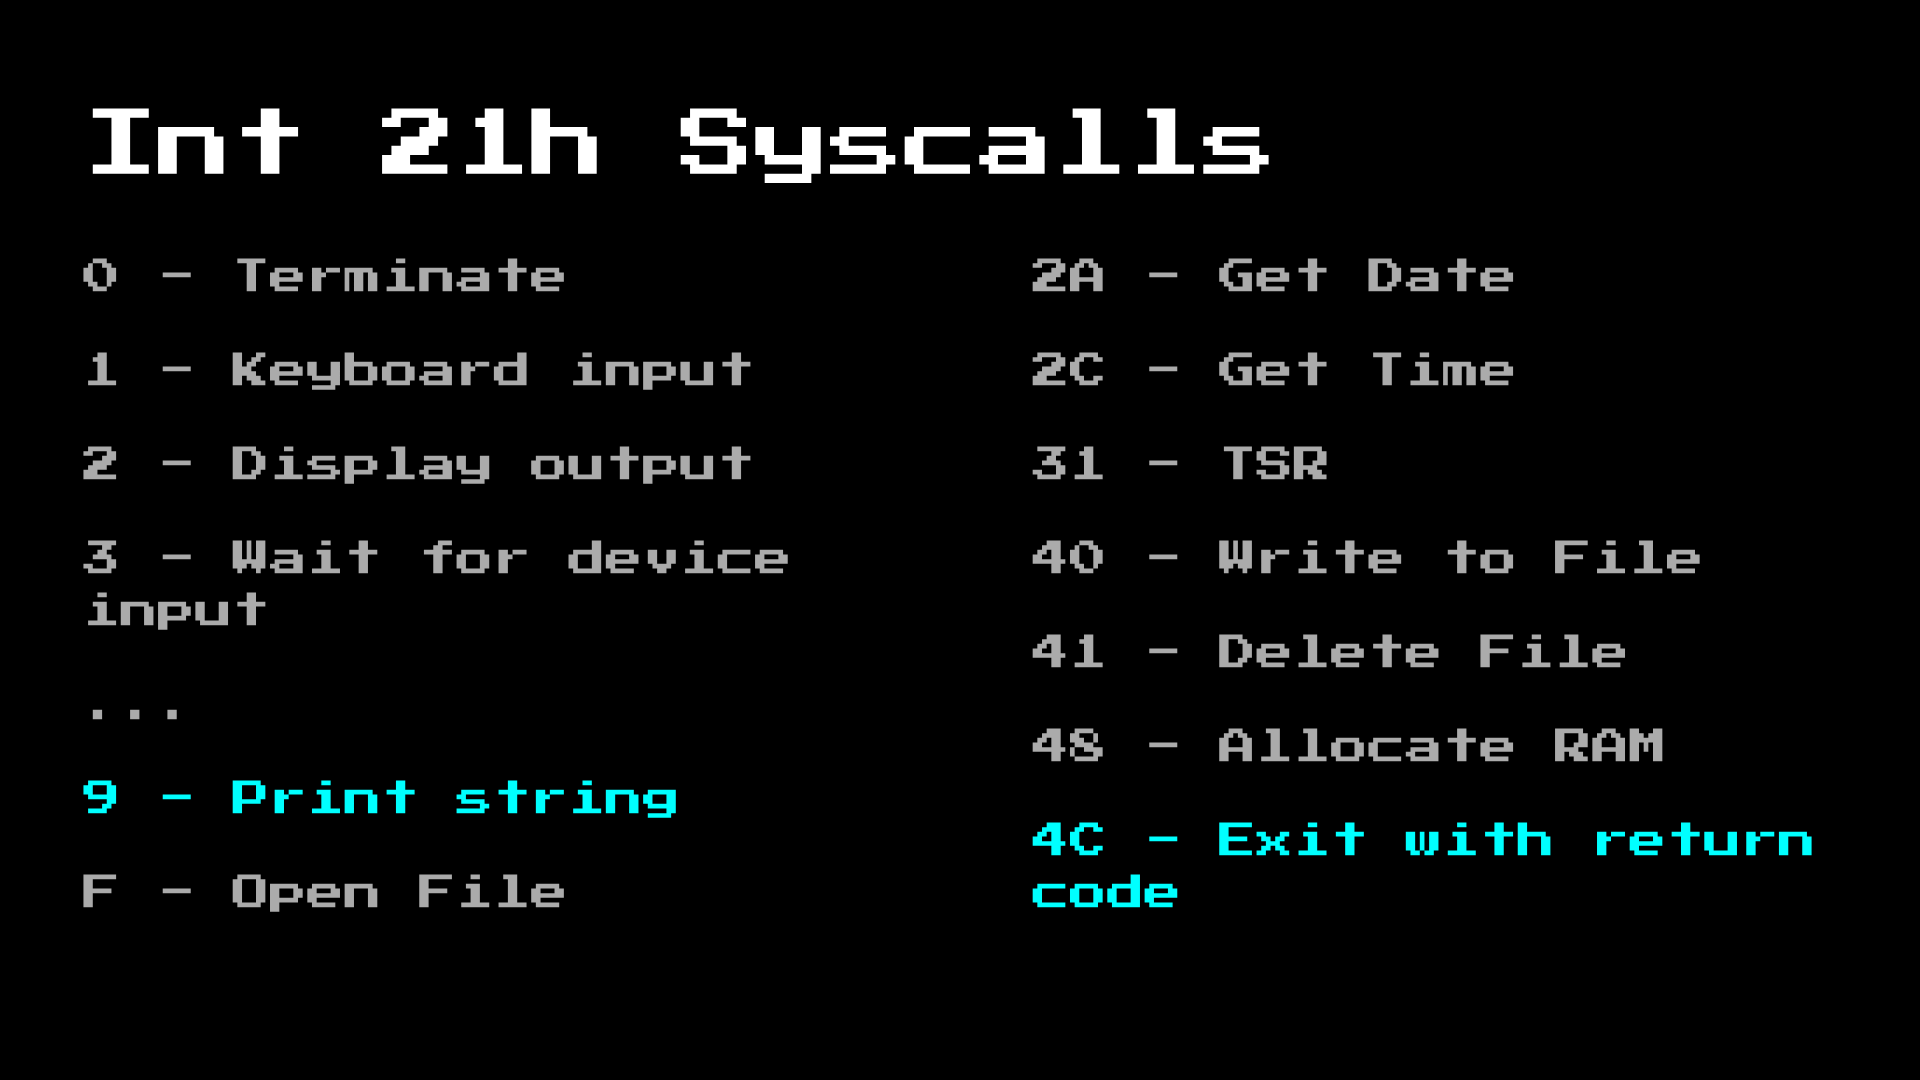 MS-DOS syscall highlighted